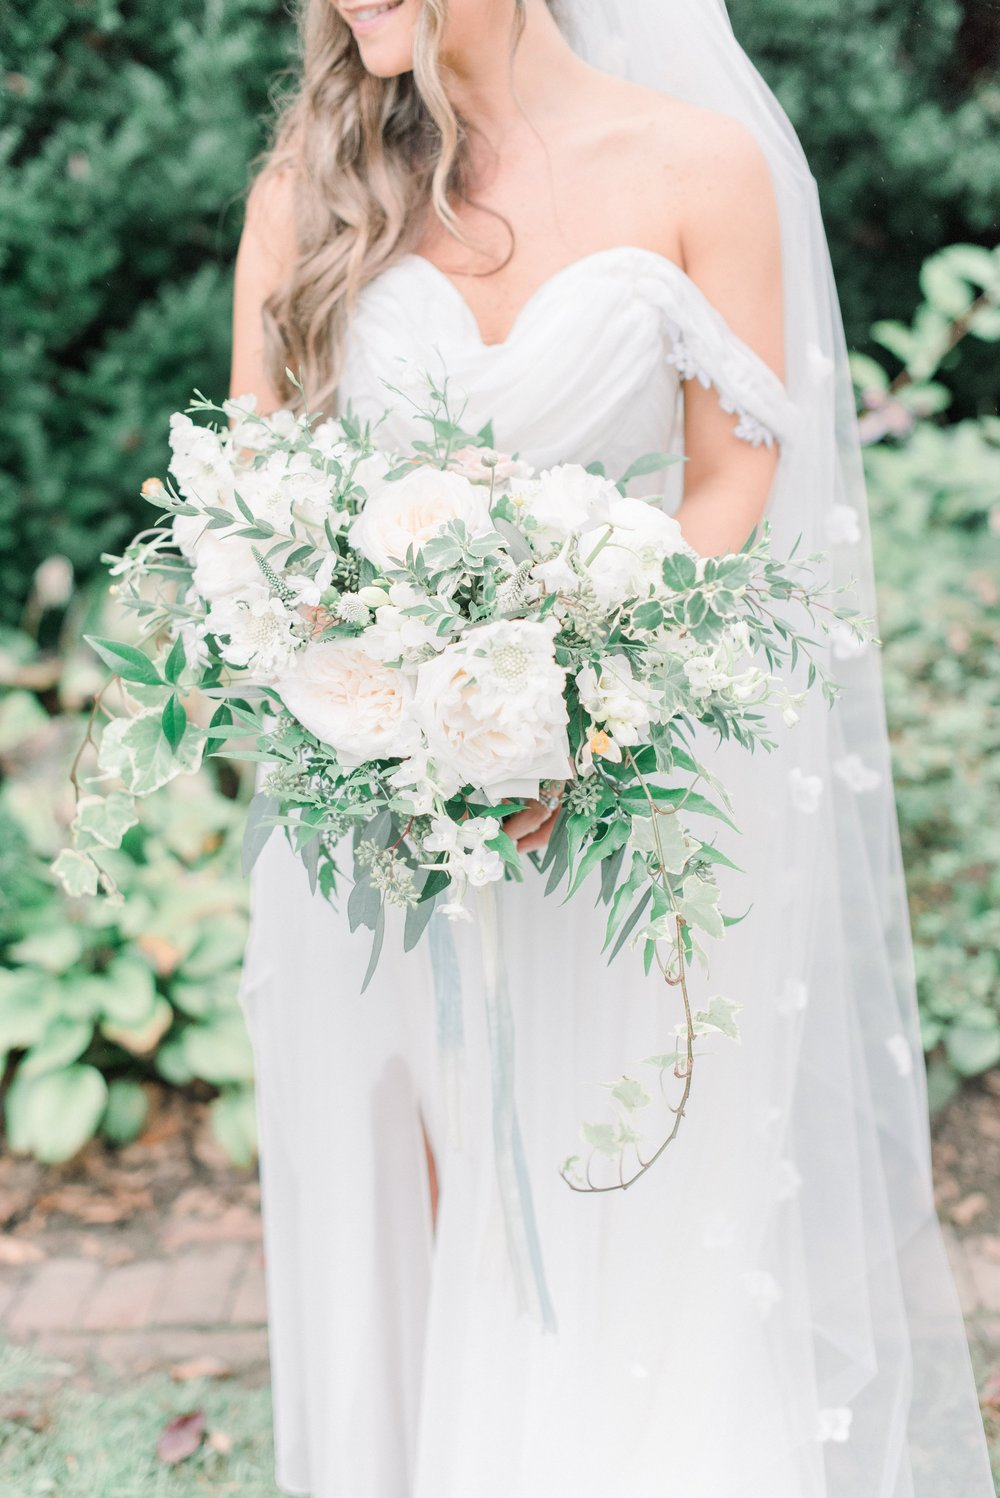 Inn at Fernbrook Wedding, White and Greenery Bouquet, CassiClaire Photography